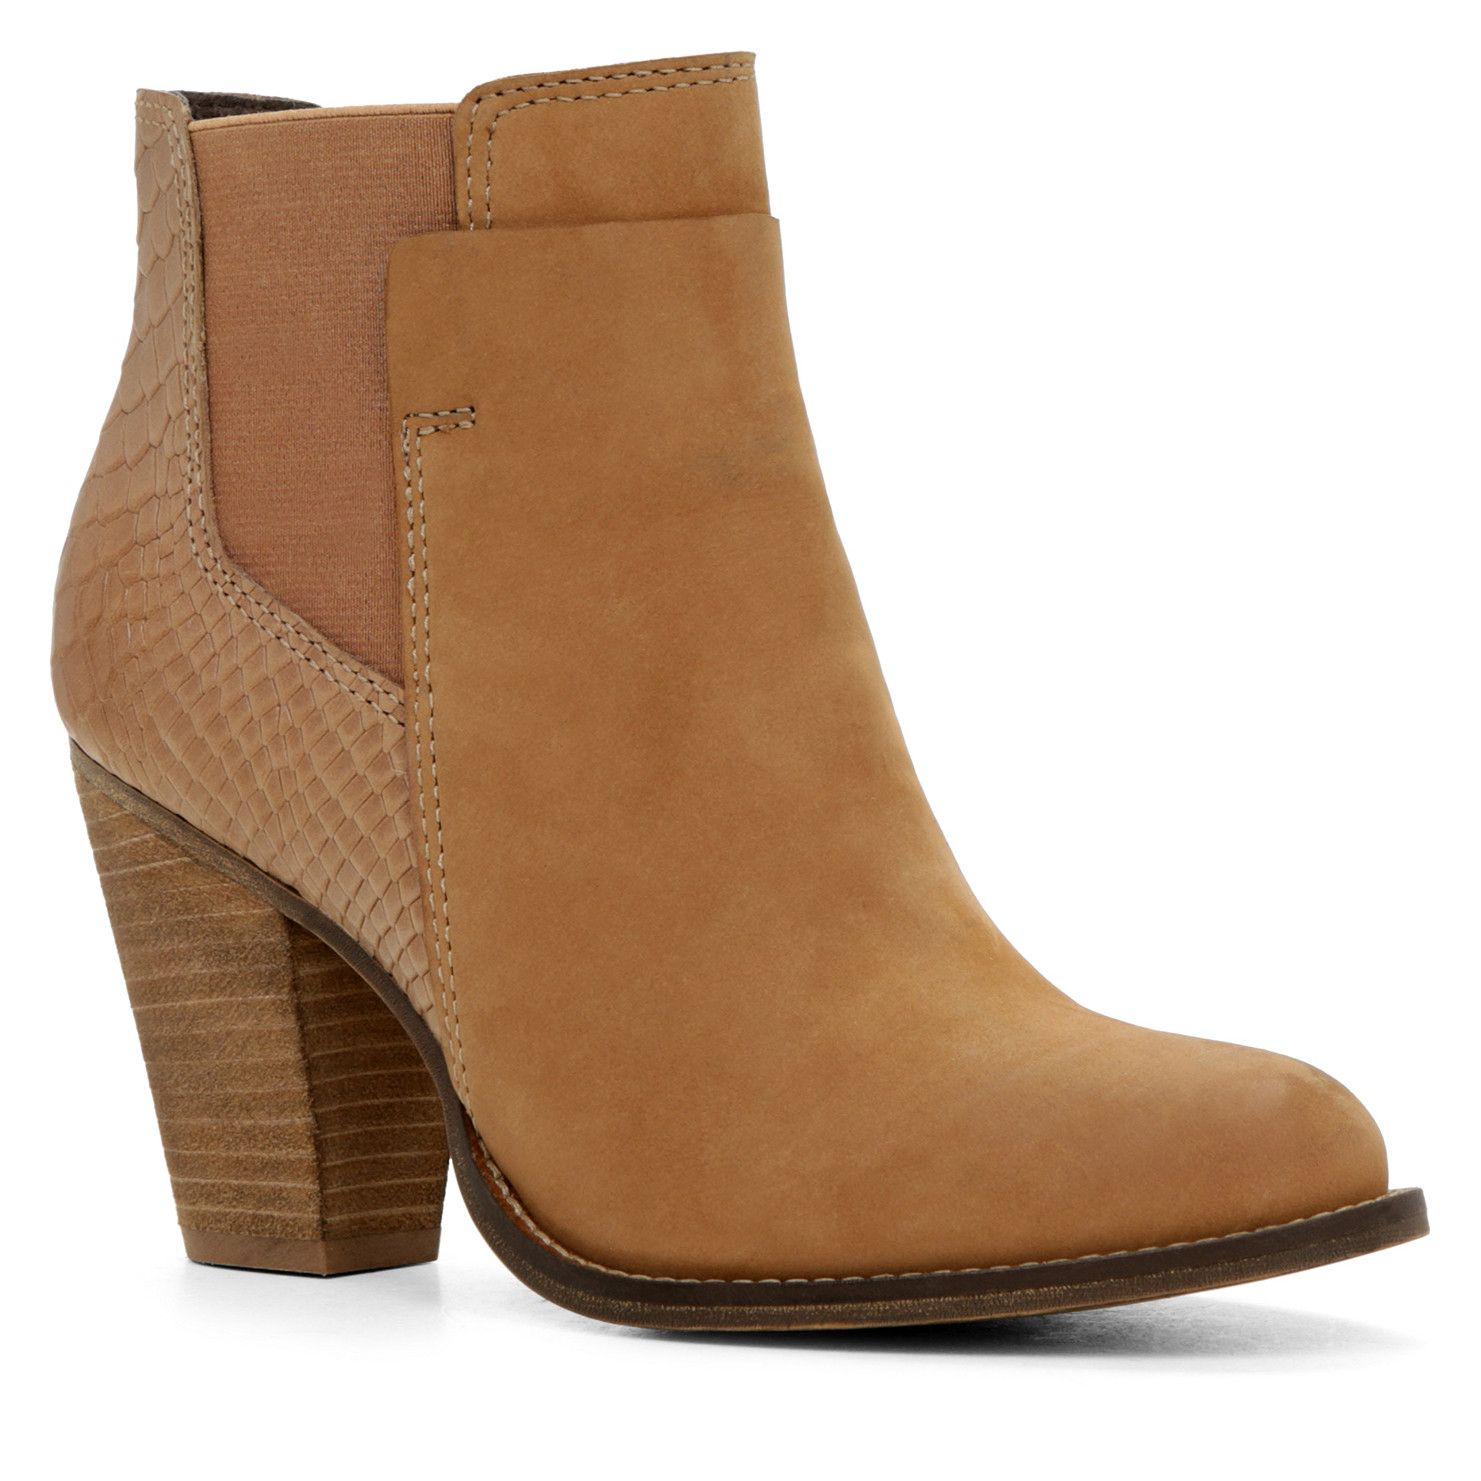 SASSI Boots on Sale | Women's Sale | ALDOShoes.com | shoes ...